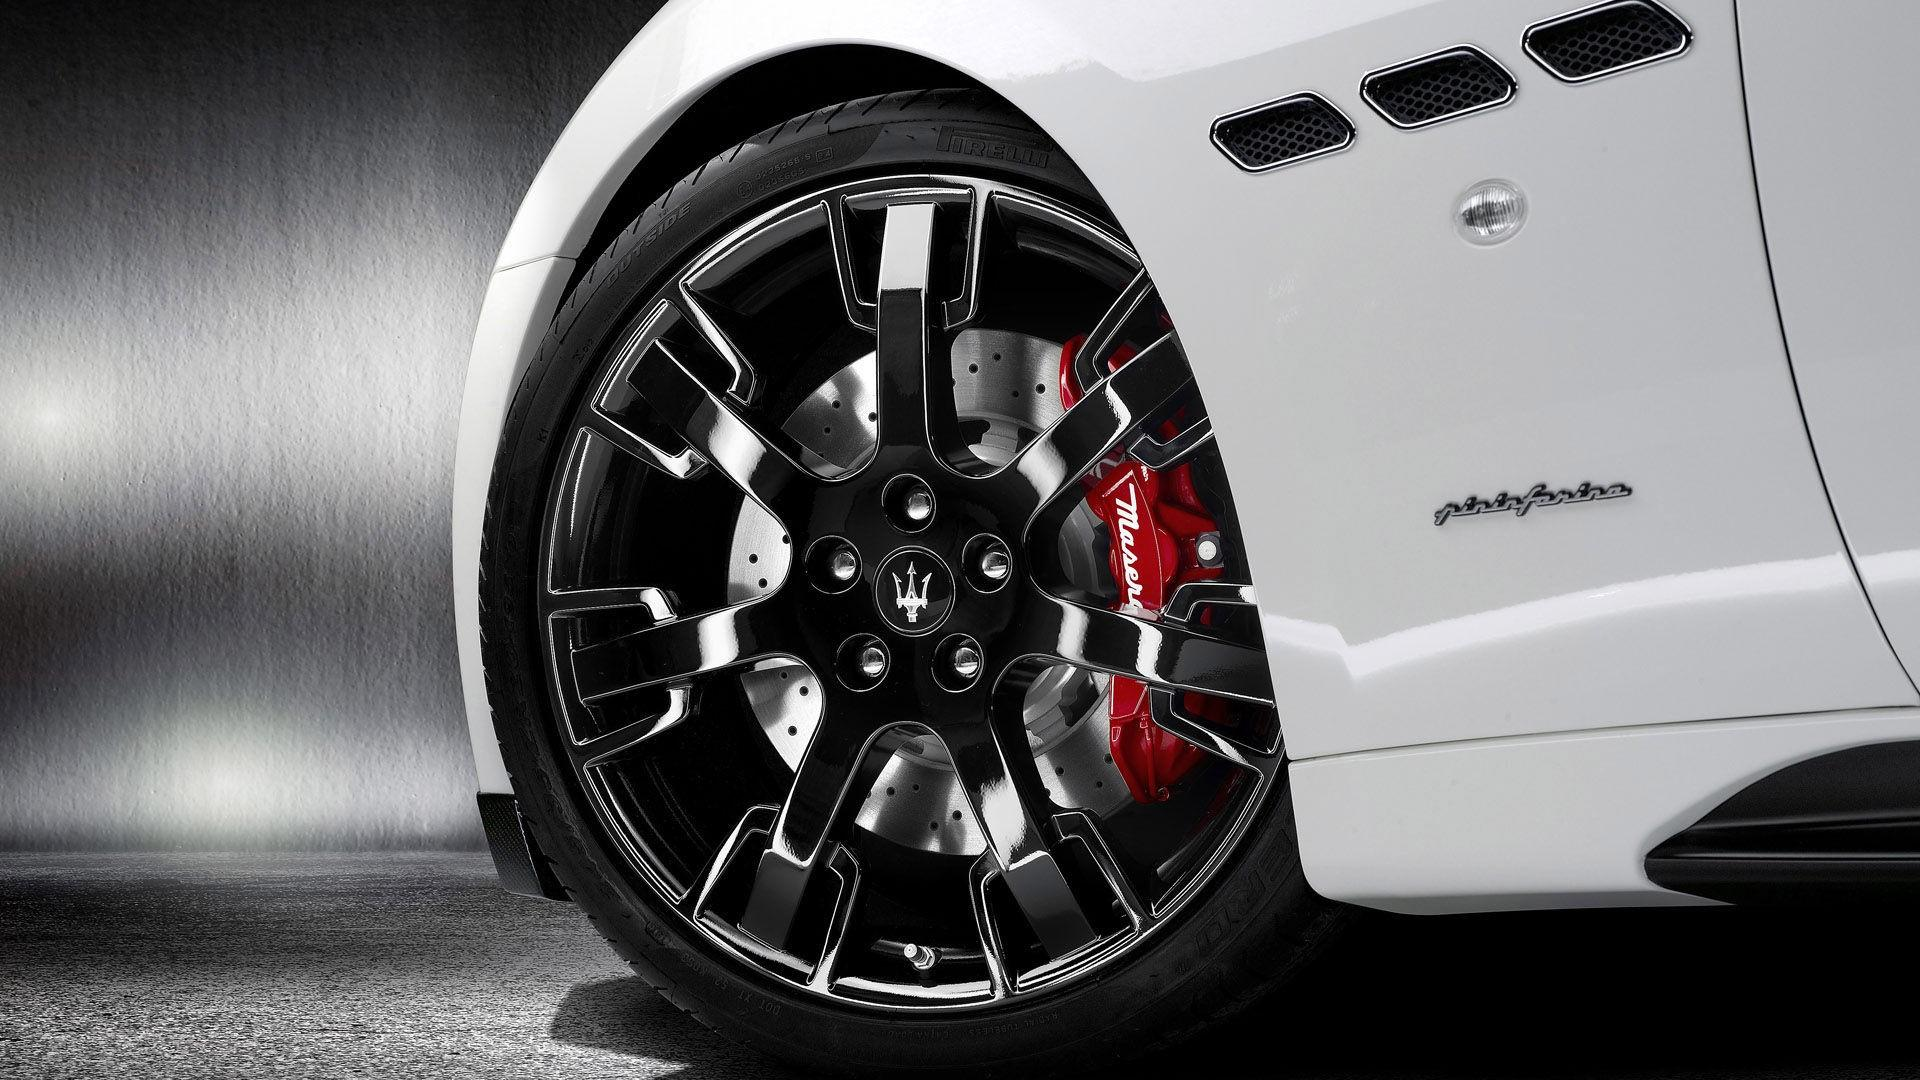 Maserati Car Wheel widescreen wallpapers